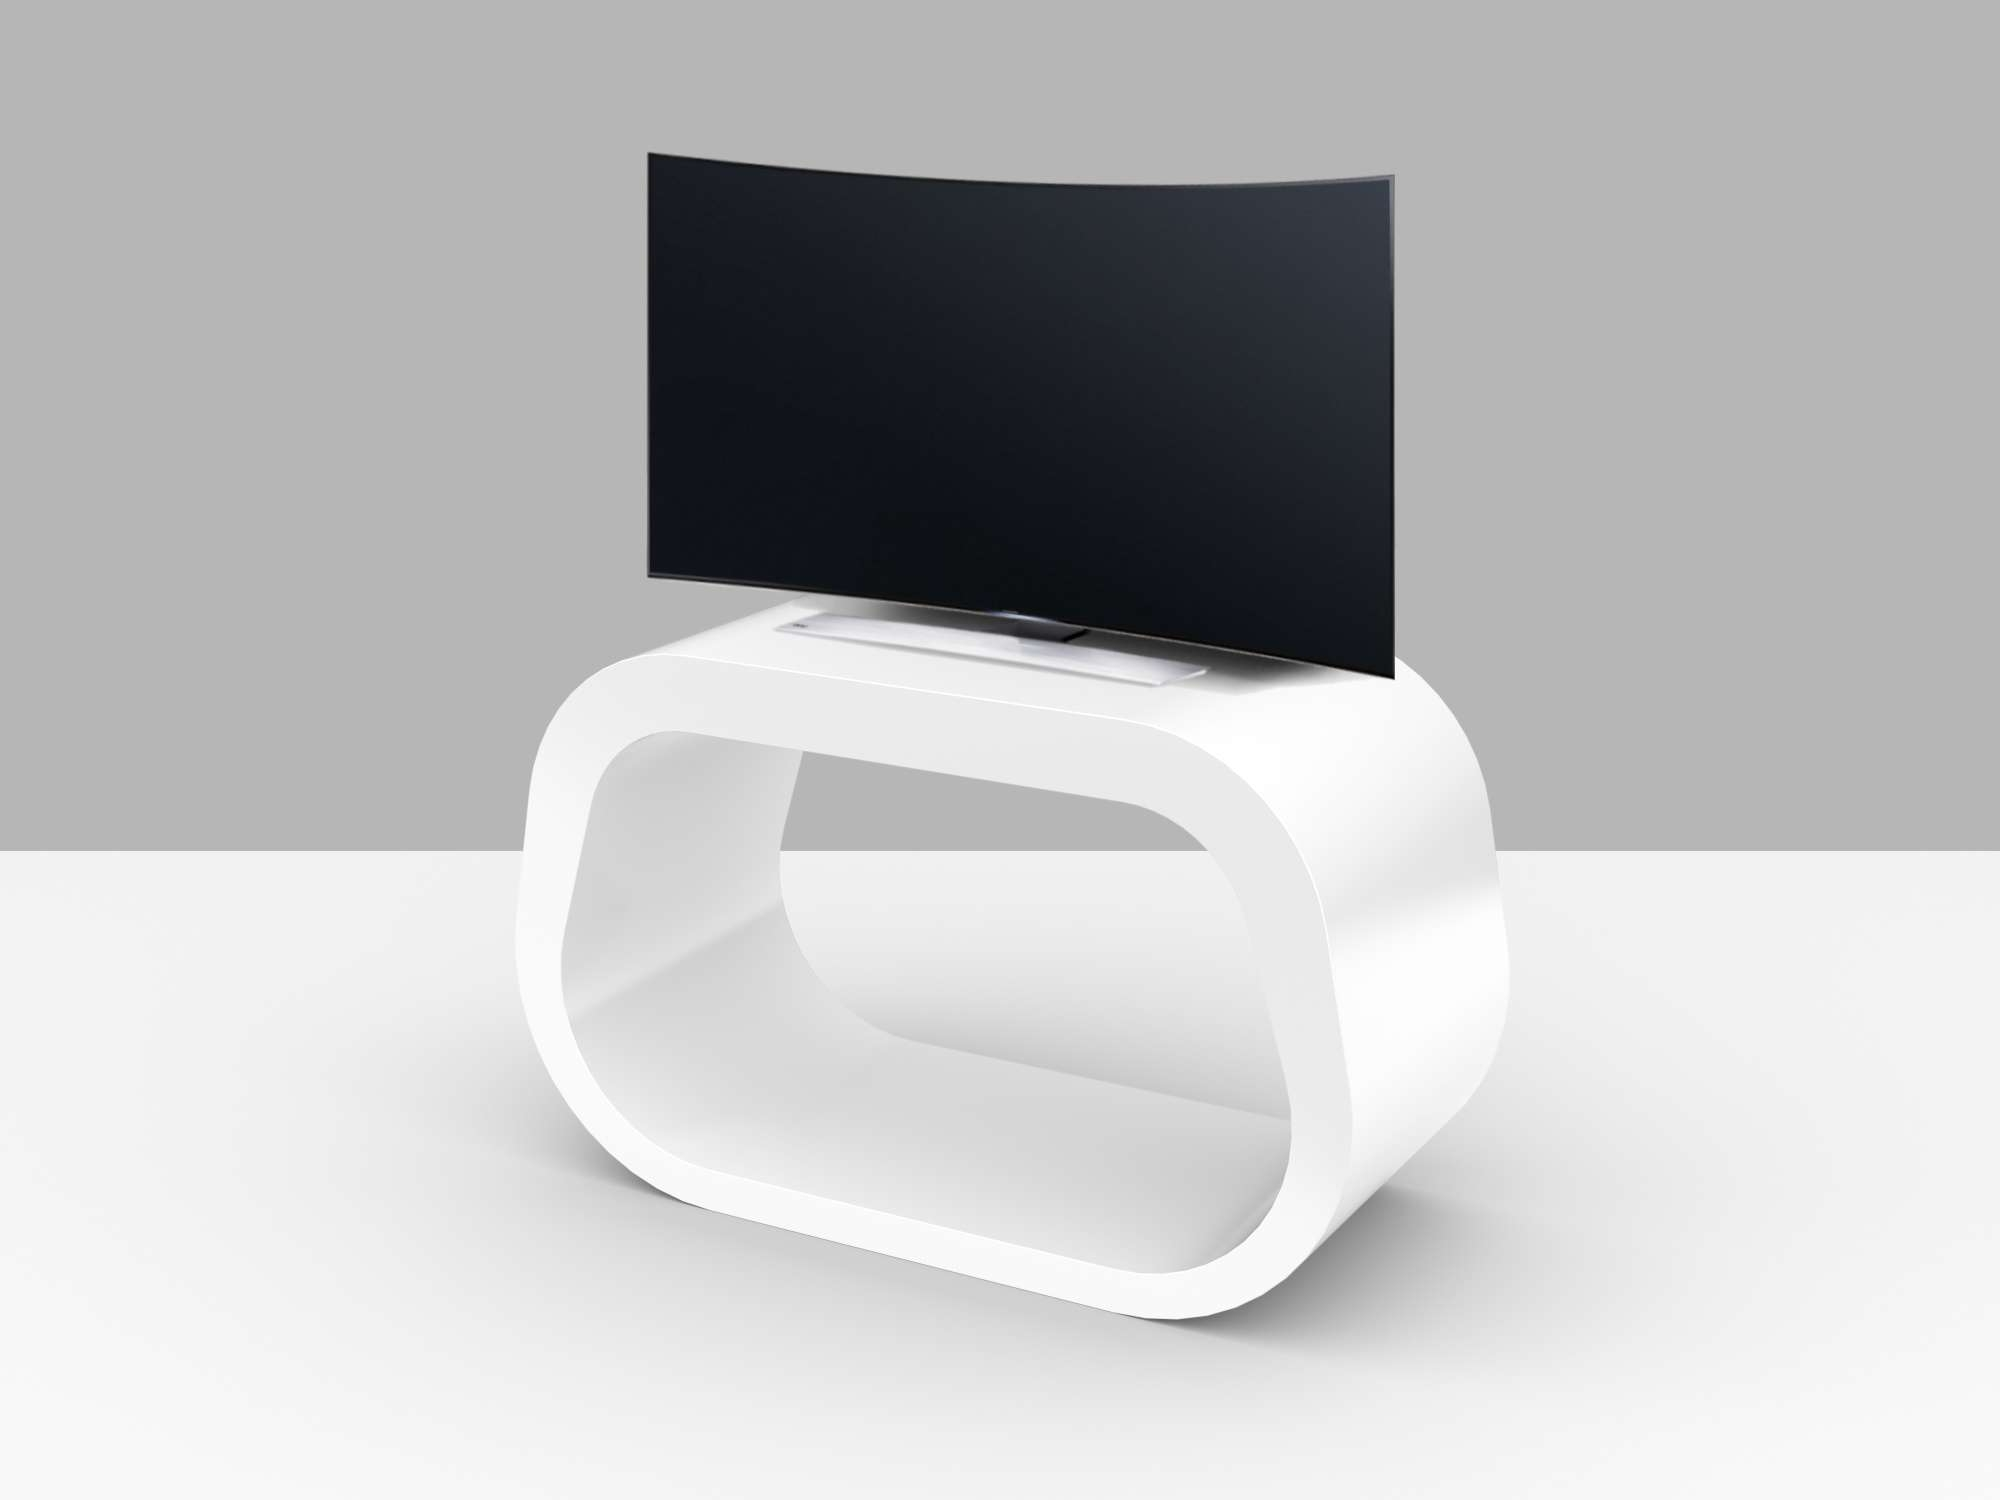 Custom Tv Stands | Custom Made Media Units – Zespoke Inside White Gloss Oval Tv Stands (View 3 of 20)